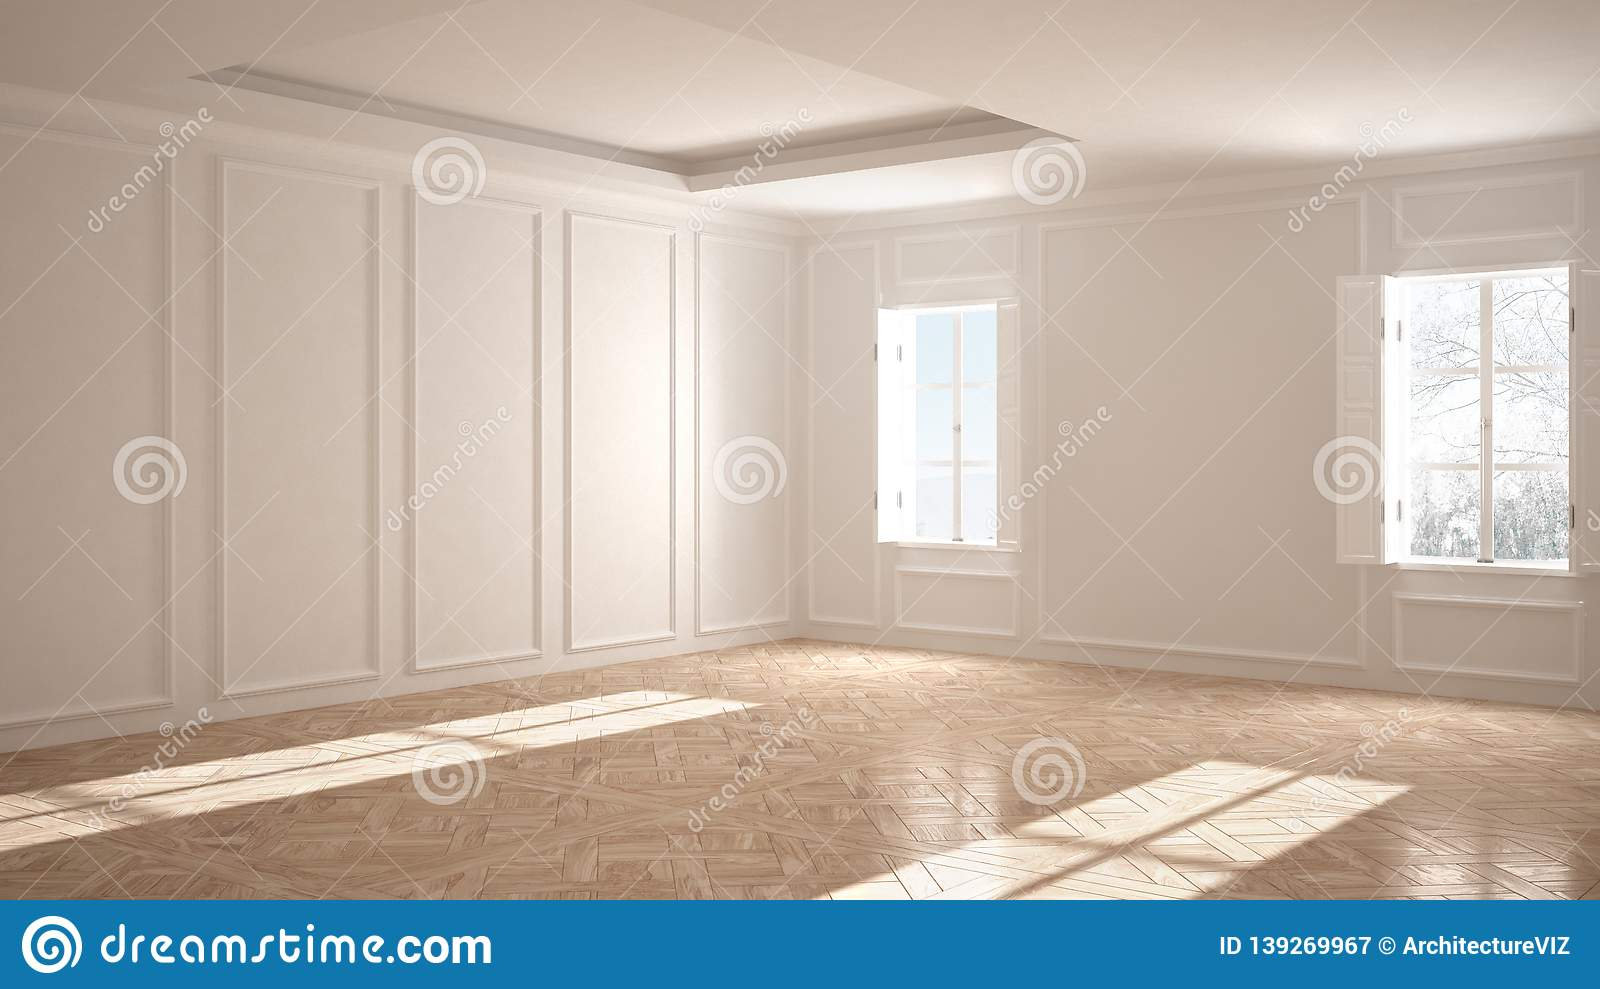 Empty Room Interior Design Open Space With Stucco Molded Walls